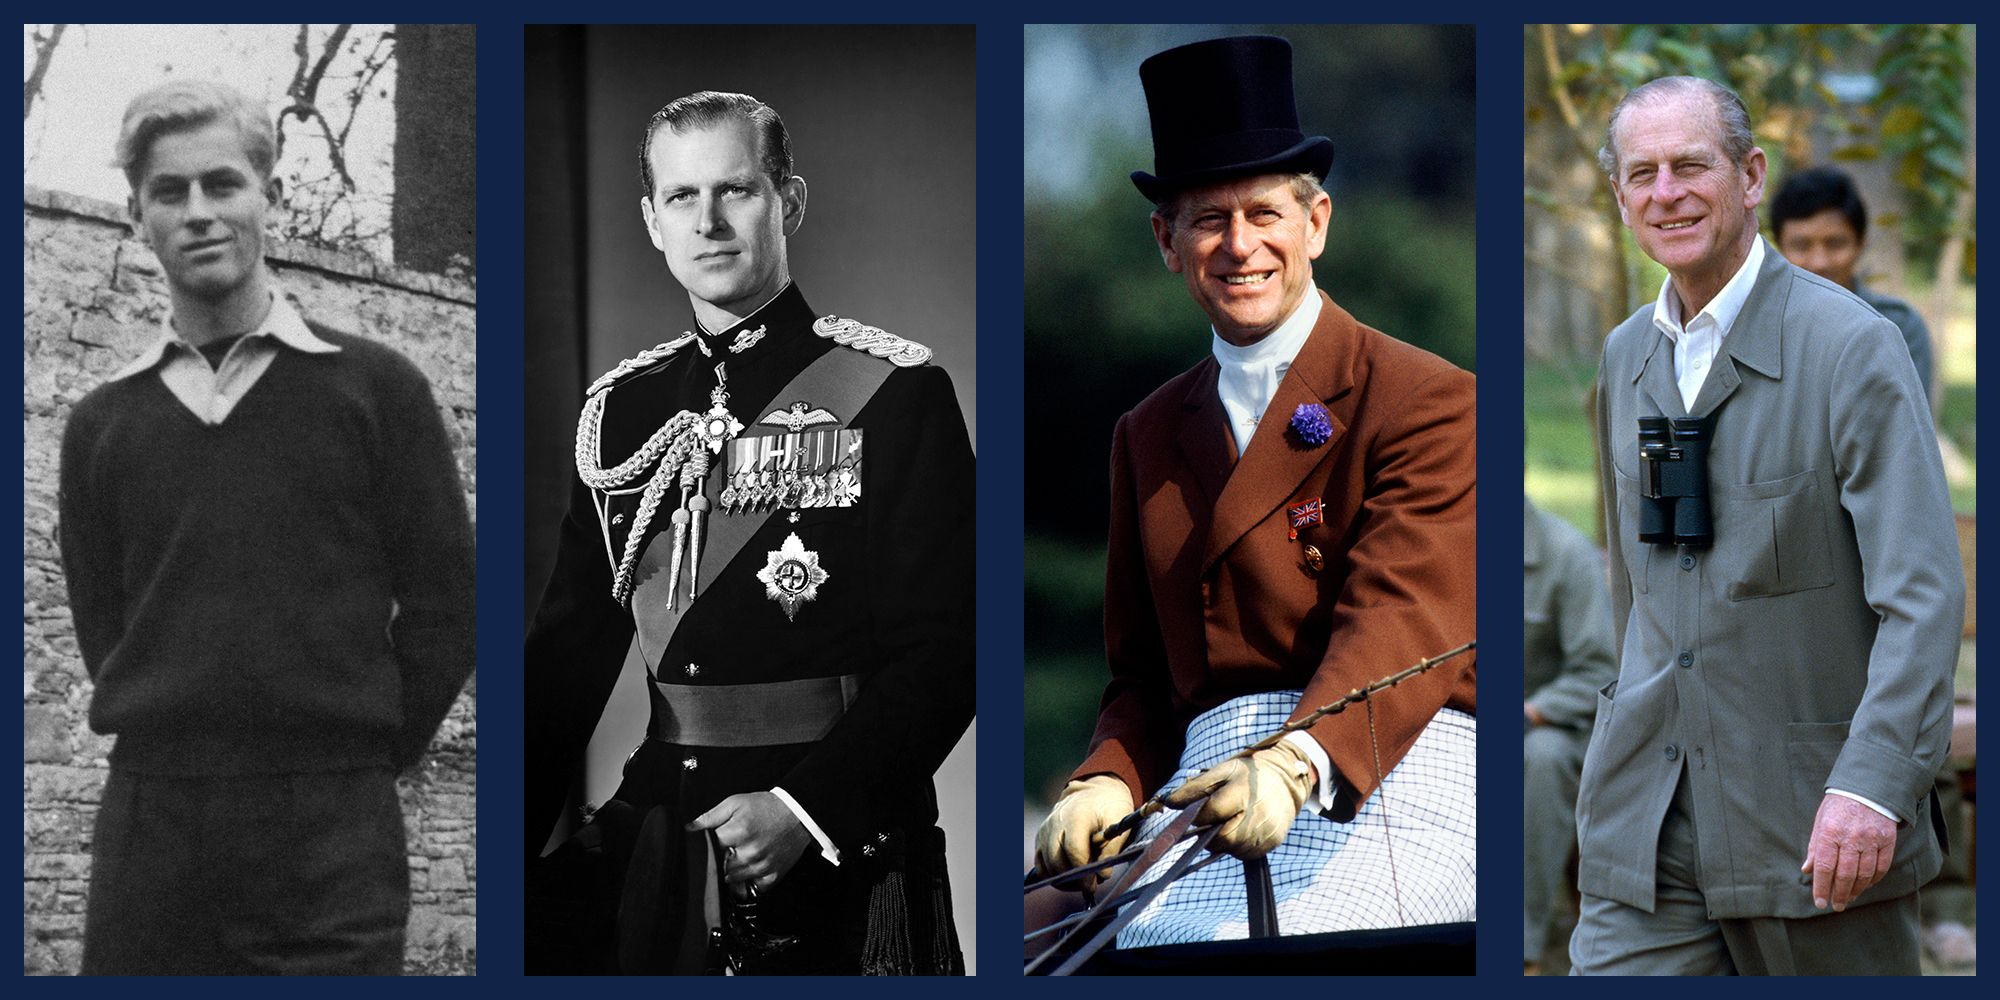 40+ Photos of Prince Philip's Life - Best Pictures of the Duke of Edinburgh